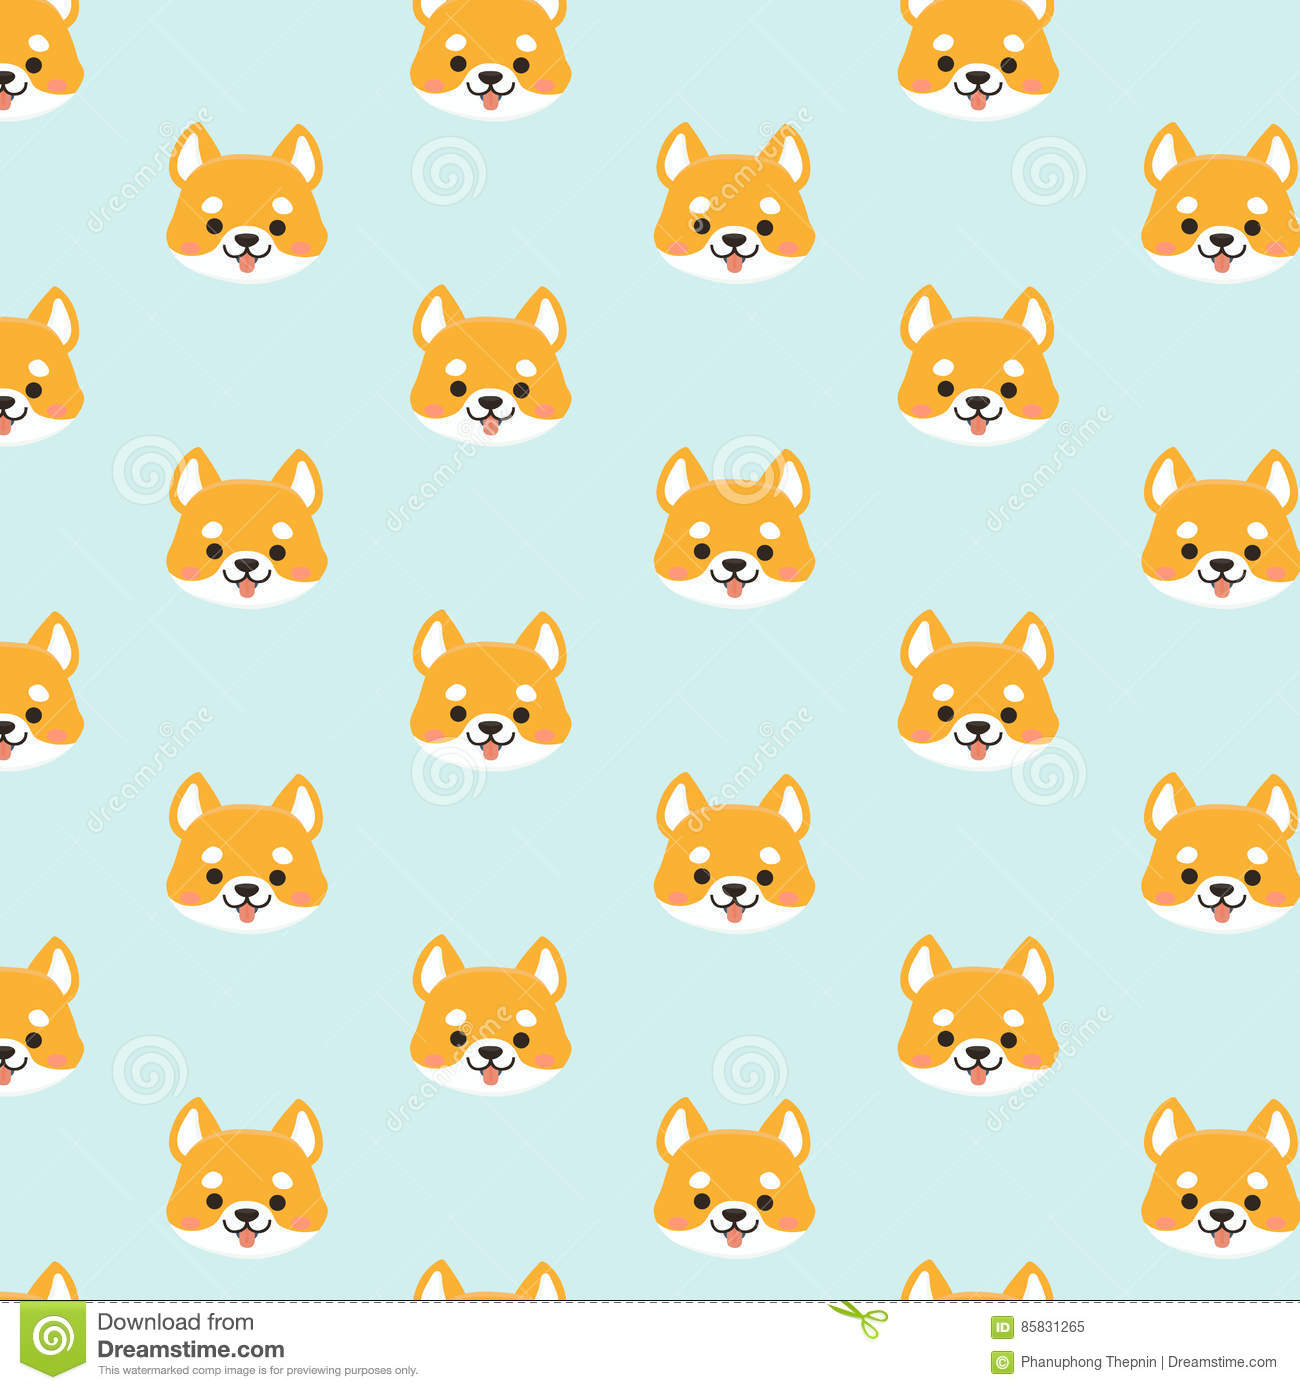 Shiba Inu Seamless Pattern Stock Vector Illustration Of Element Simple 85831265